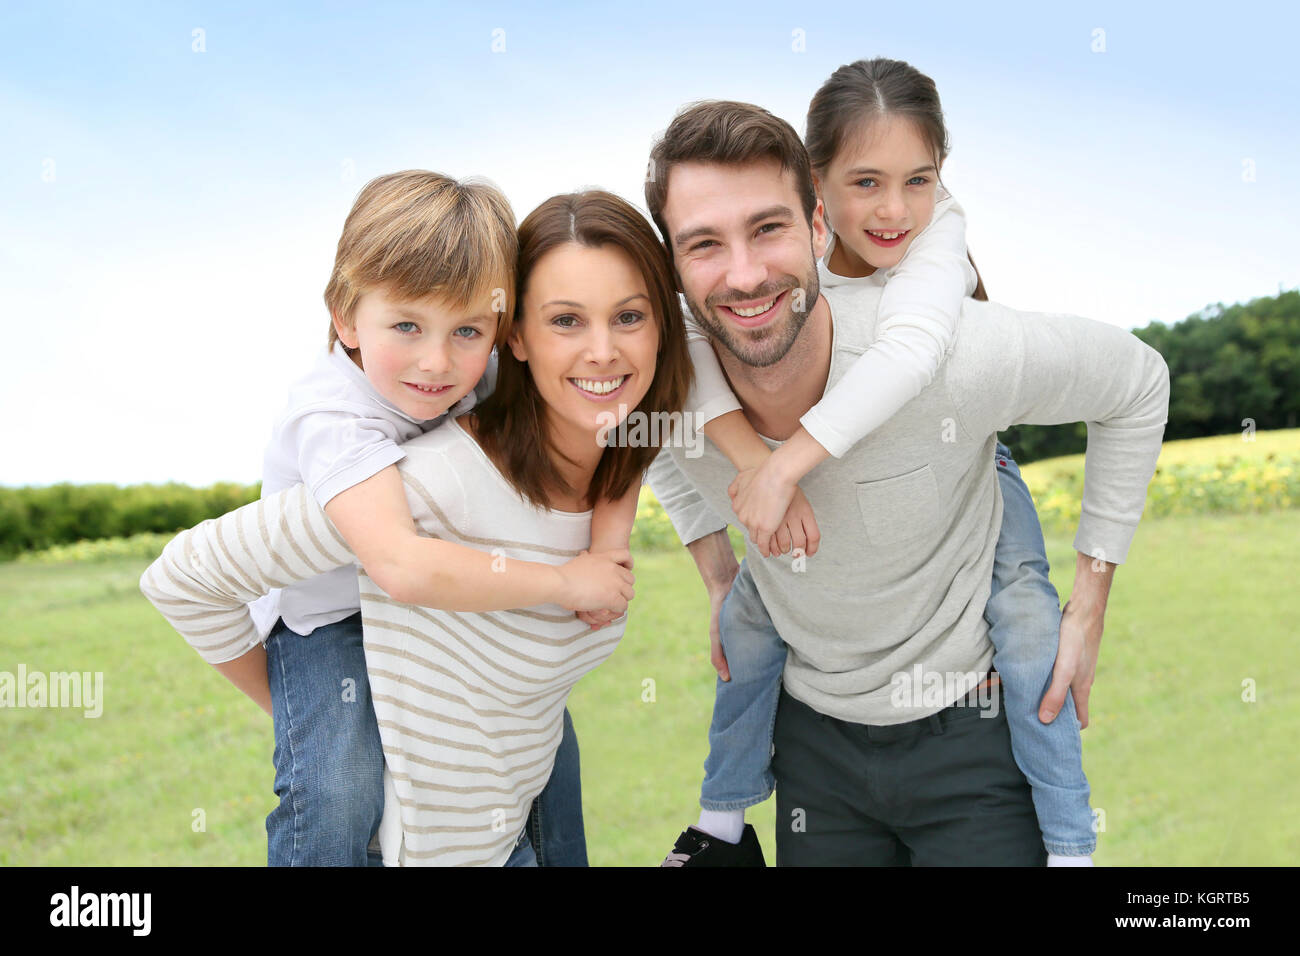 Les jeunes parents de donner aux enfants piggyback ride Photo Stock